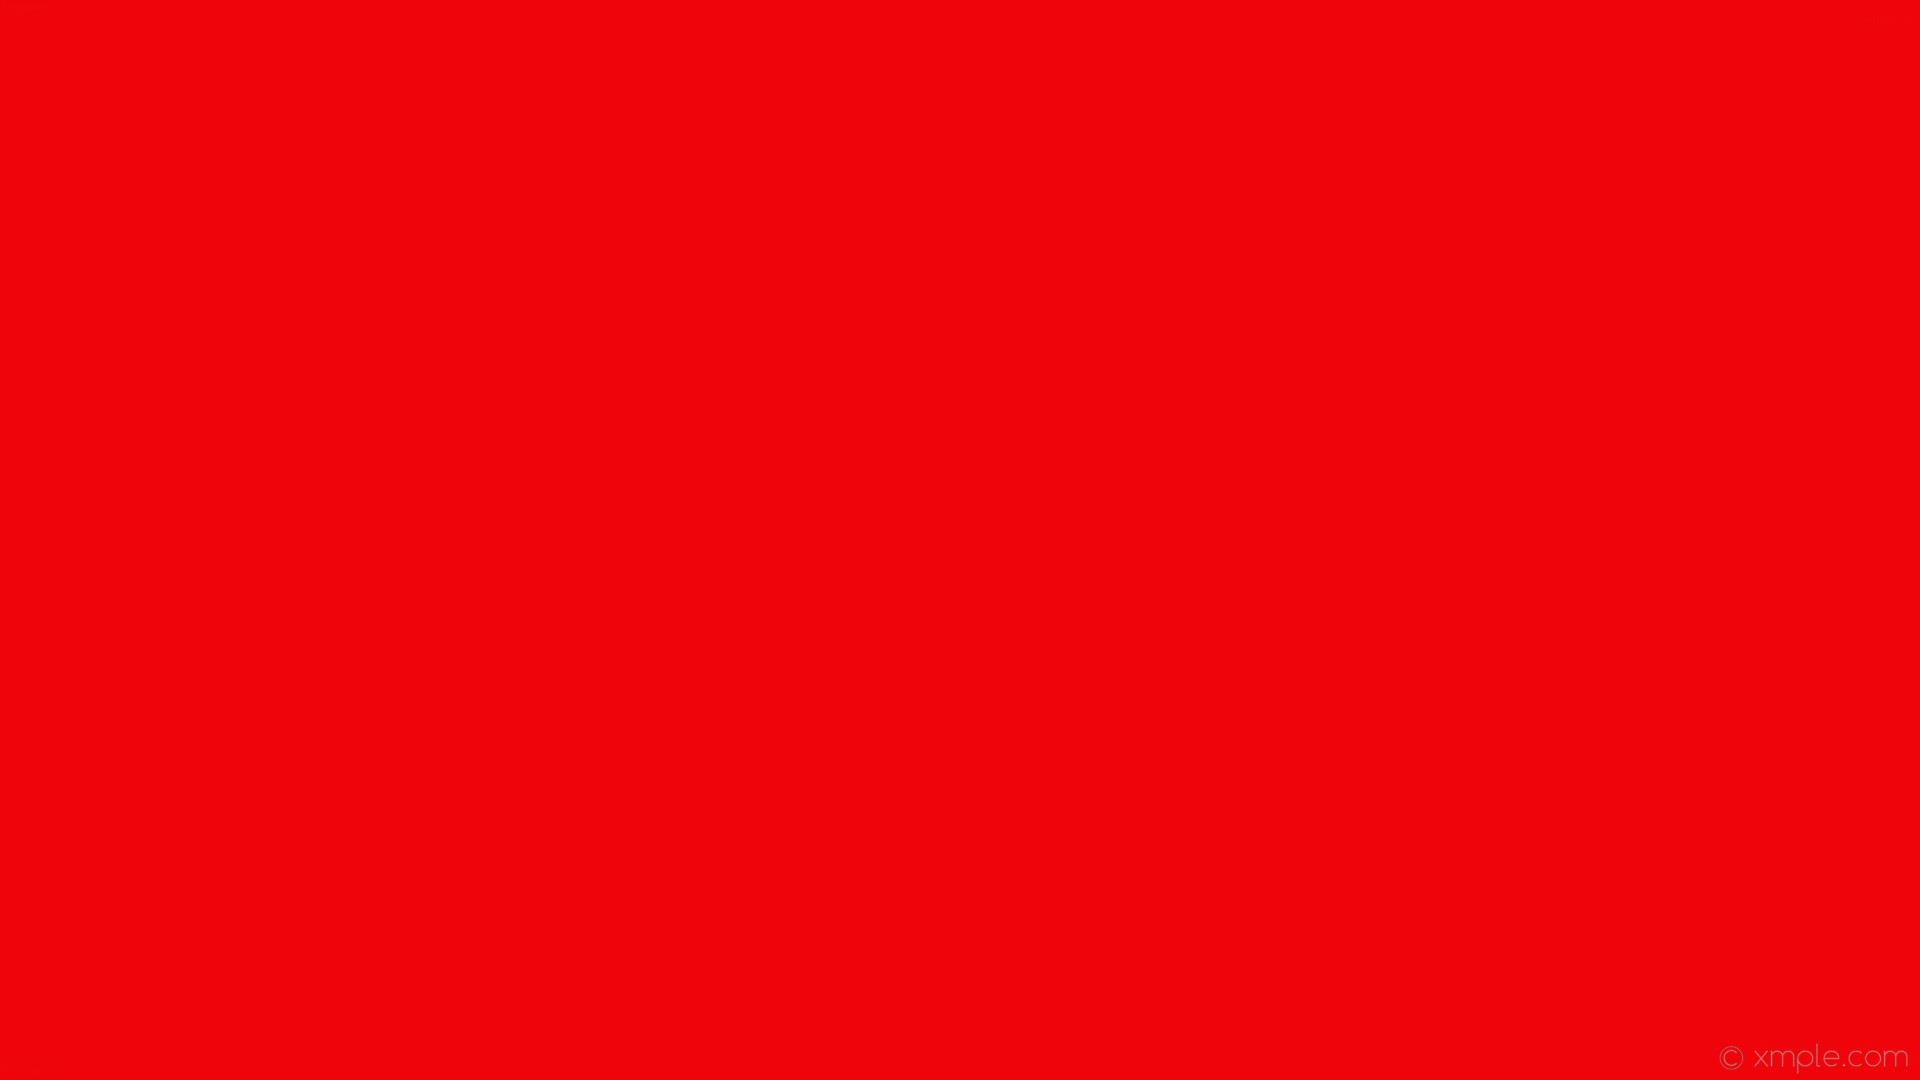 1920x1080 wallpaper plain solid color red one colour single #ee040a